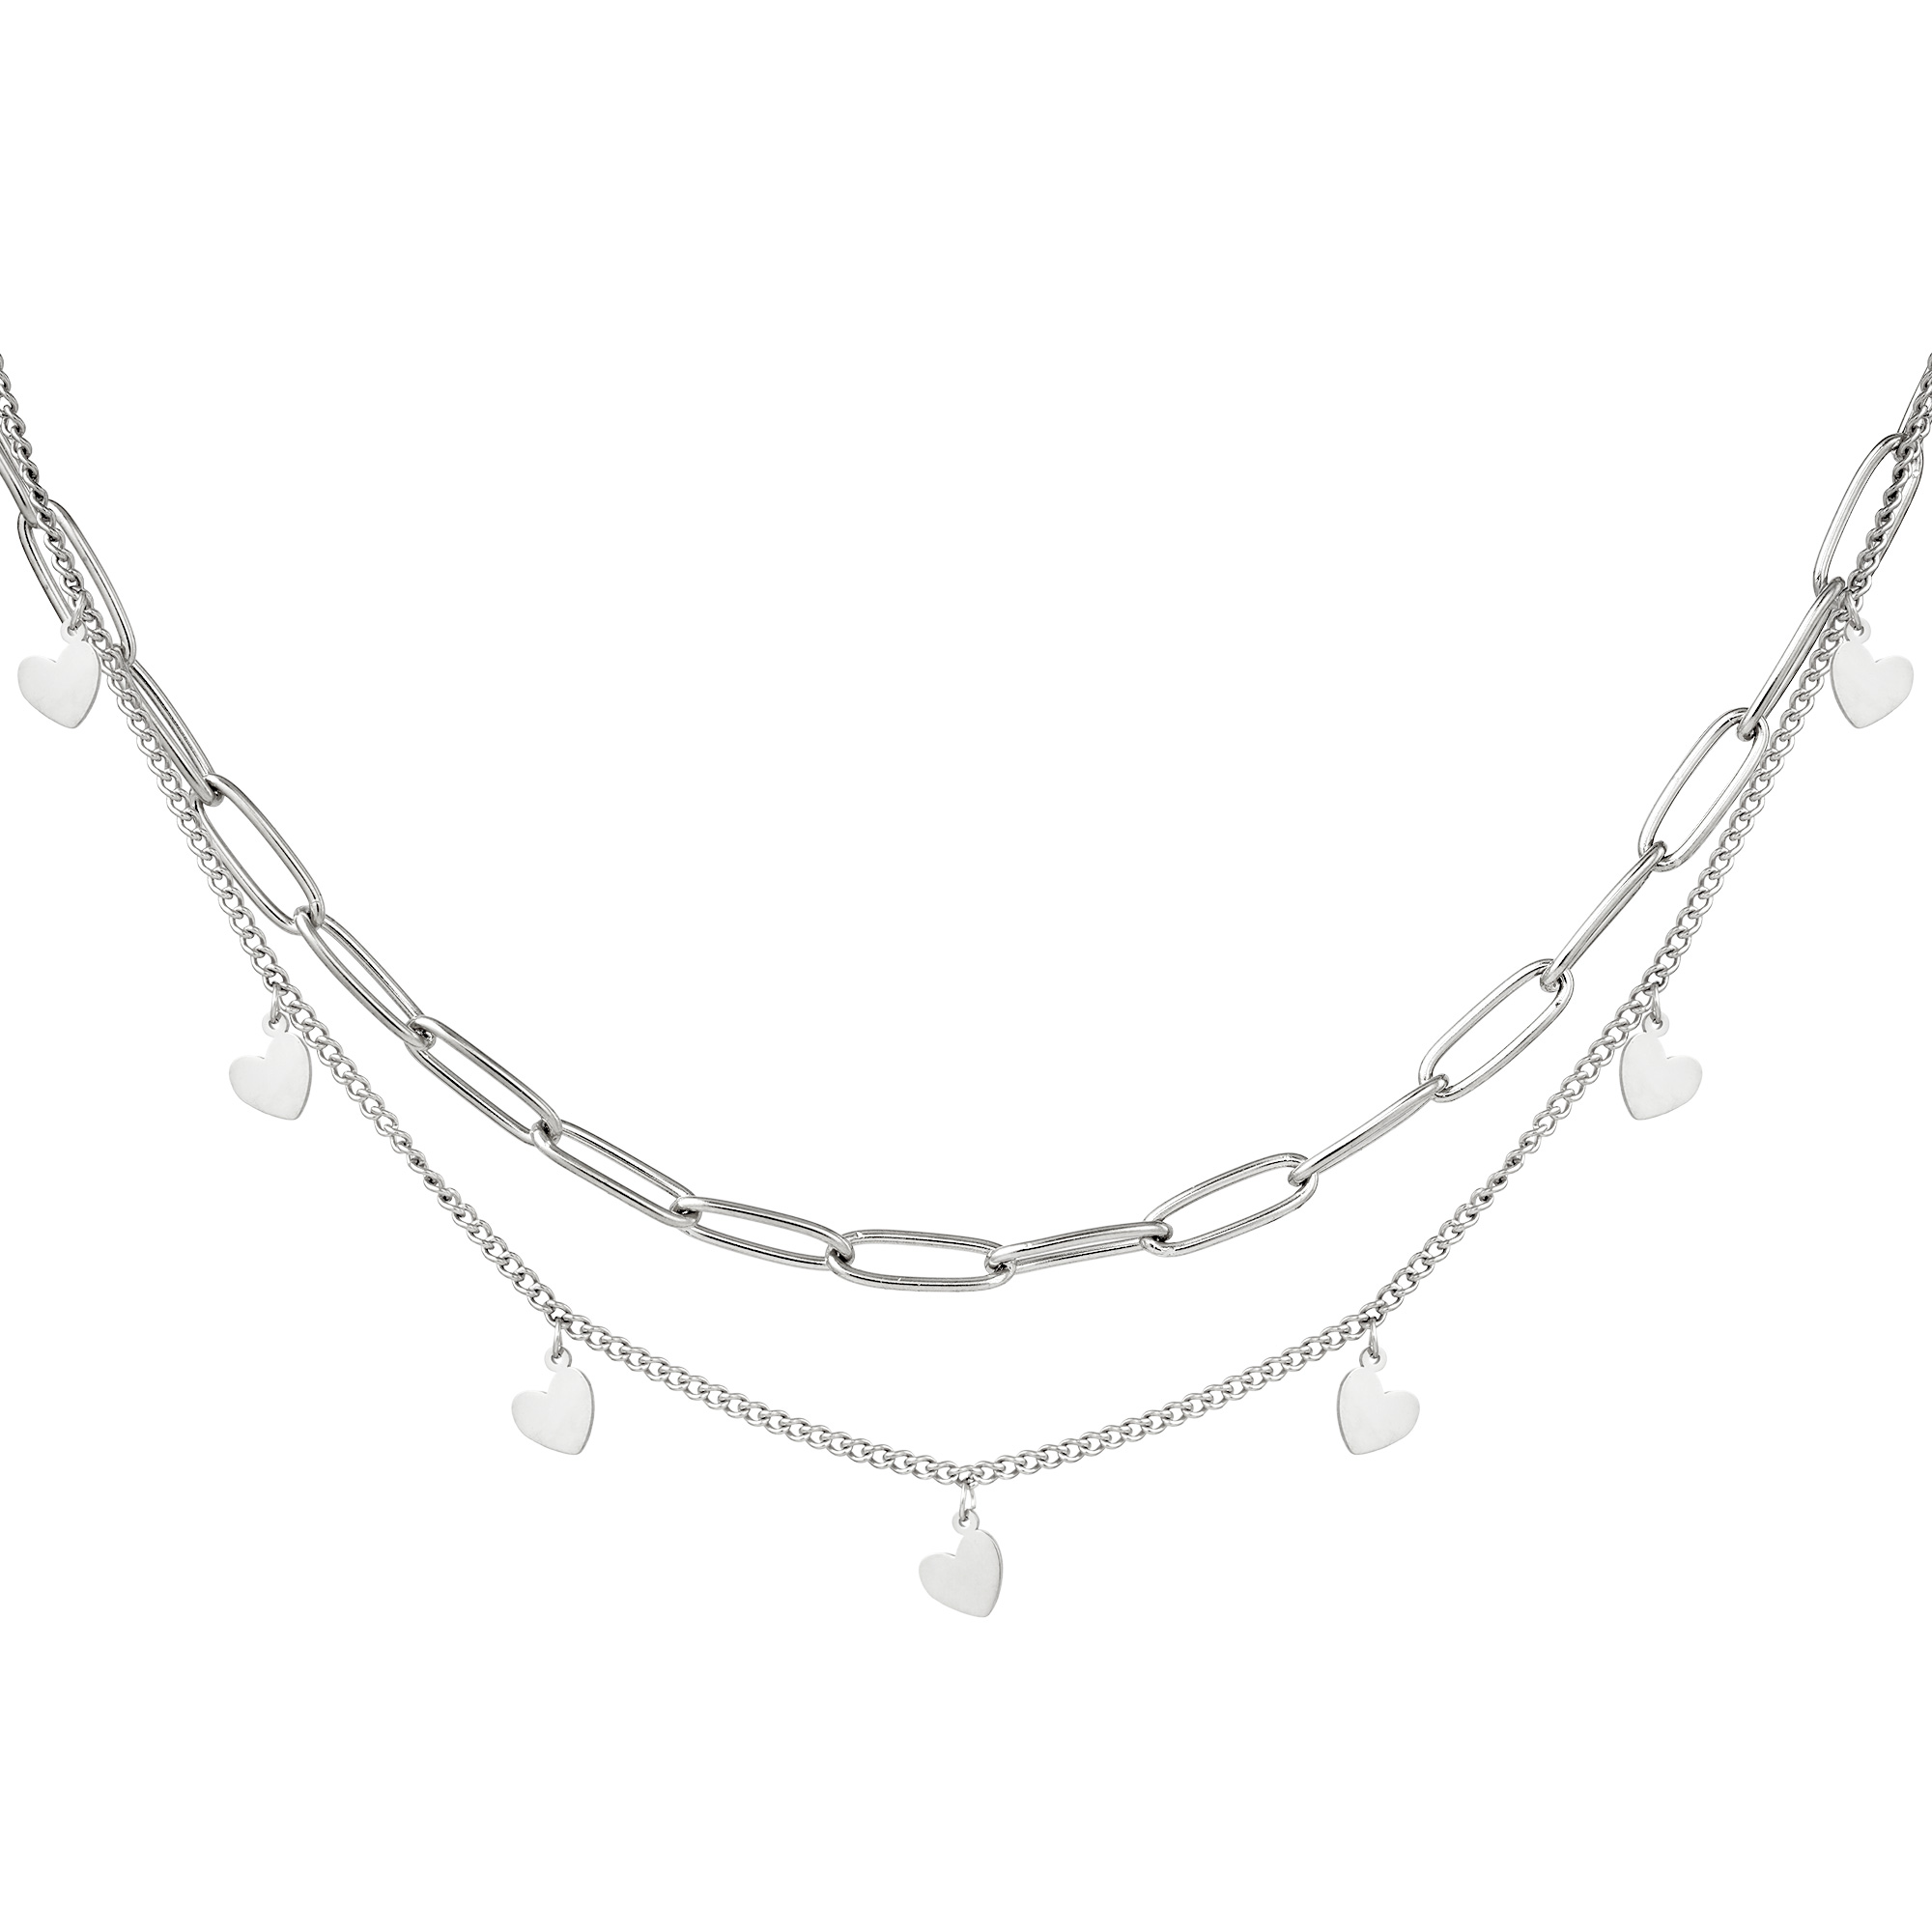 Ketting Chain My Heart Zilver